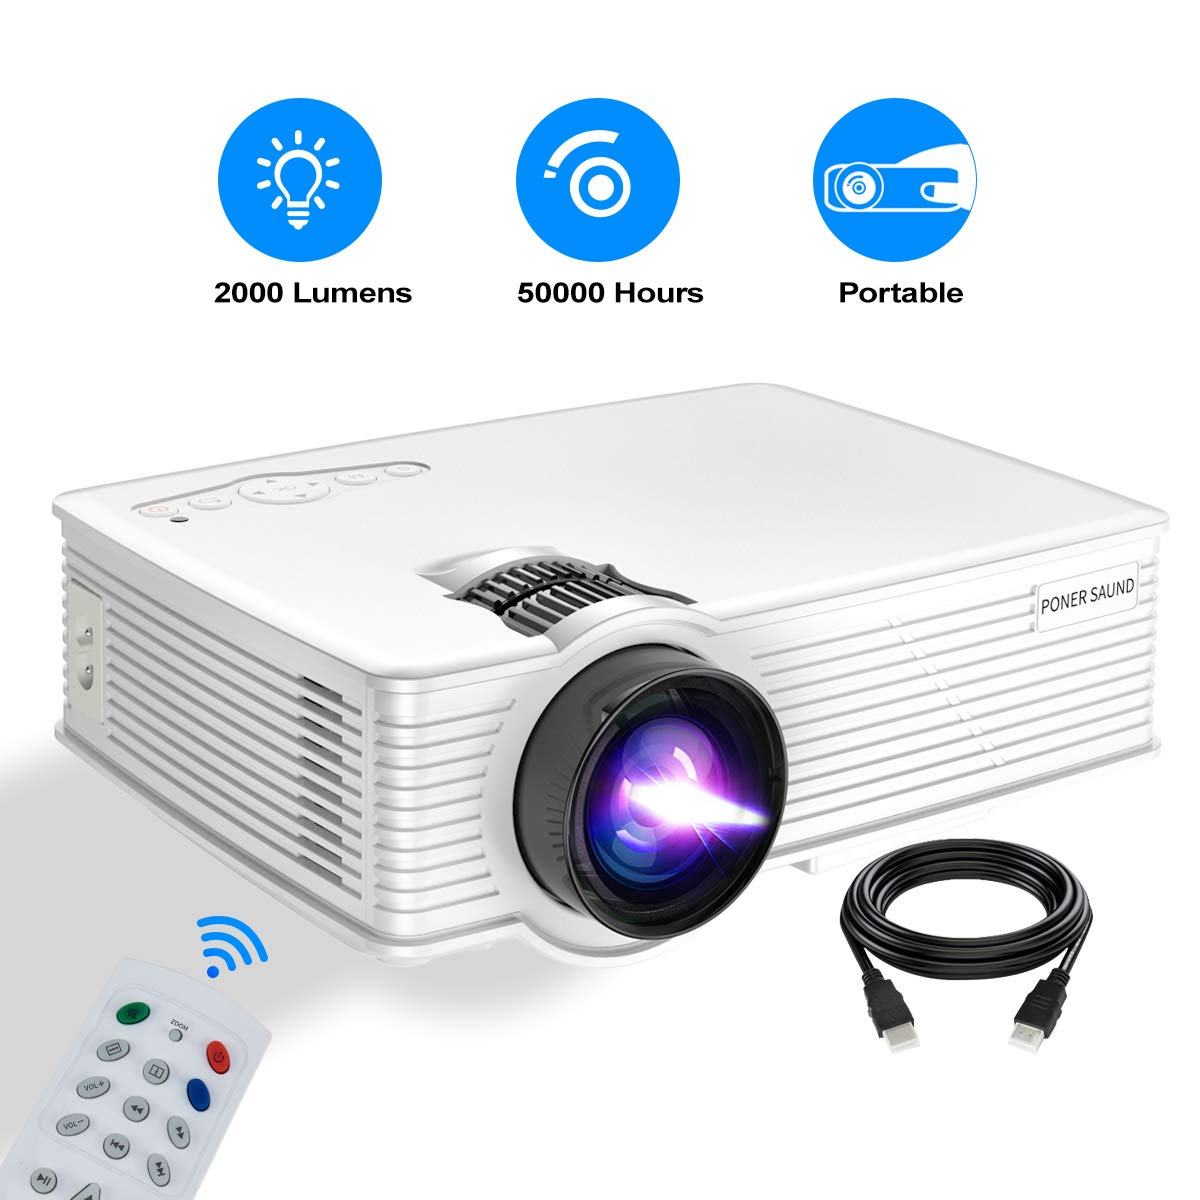 Mini Projector Portable, PONER SAUND GP9 Projector 2000 Lux LED Mini Projector, 1080P Supported Video Projector with 170'' LCD, Compatible with Ipad, Fire TV Stick, PS4, HDMI, VGA, TF, USB